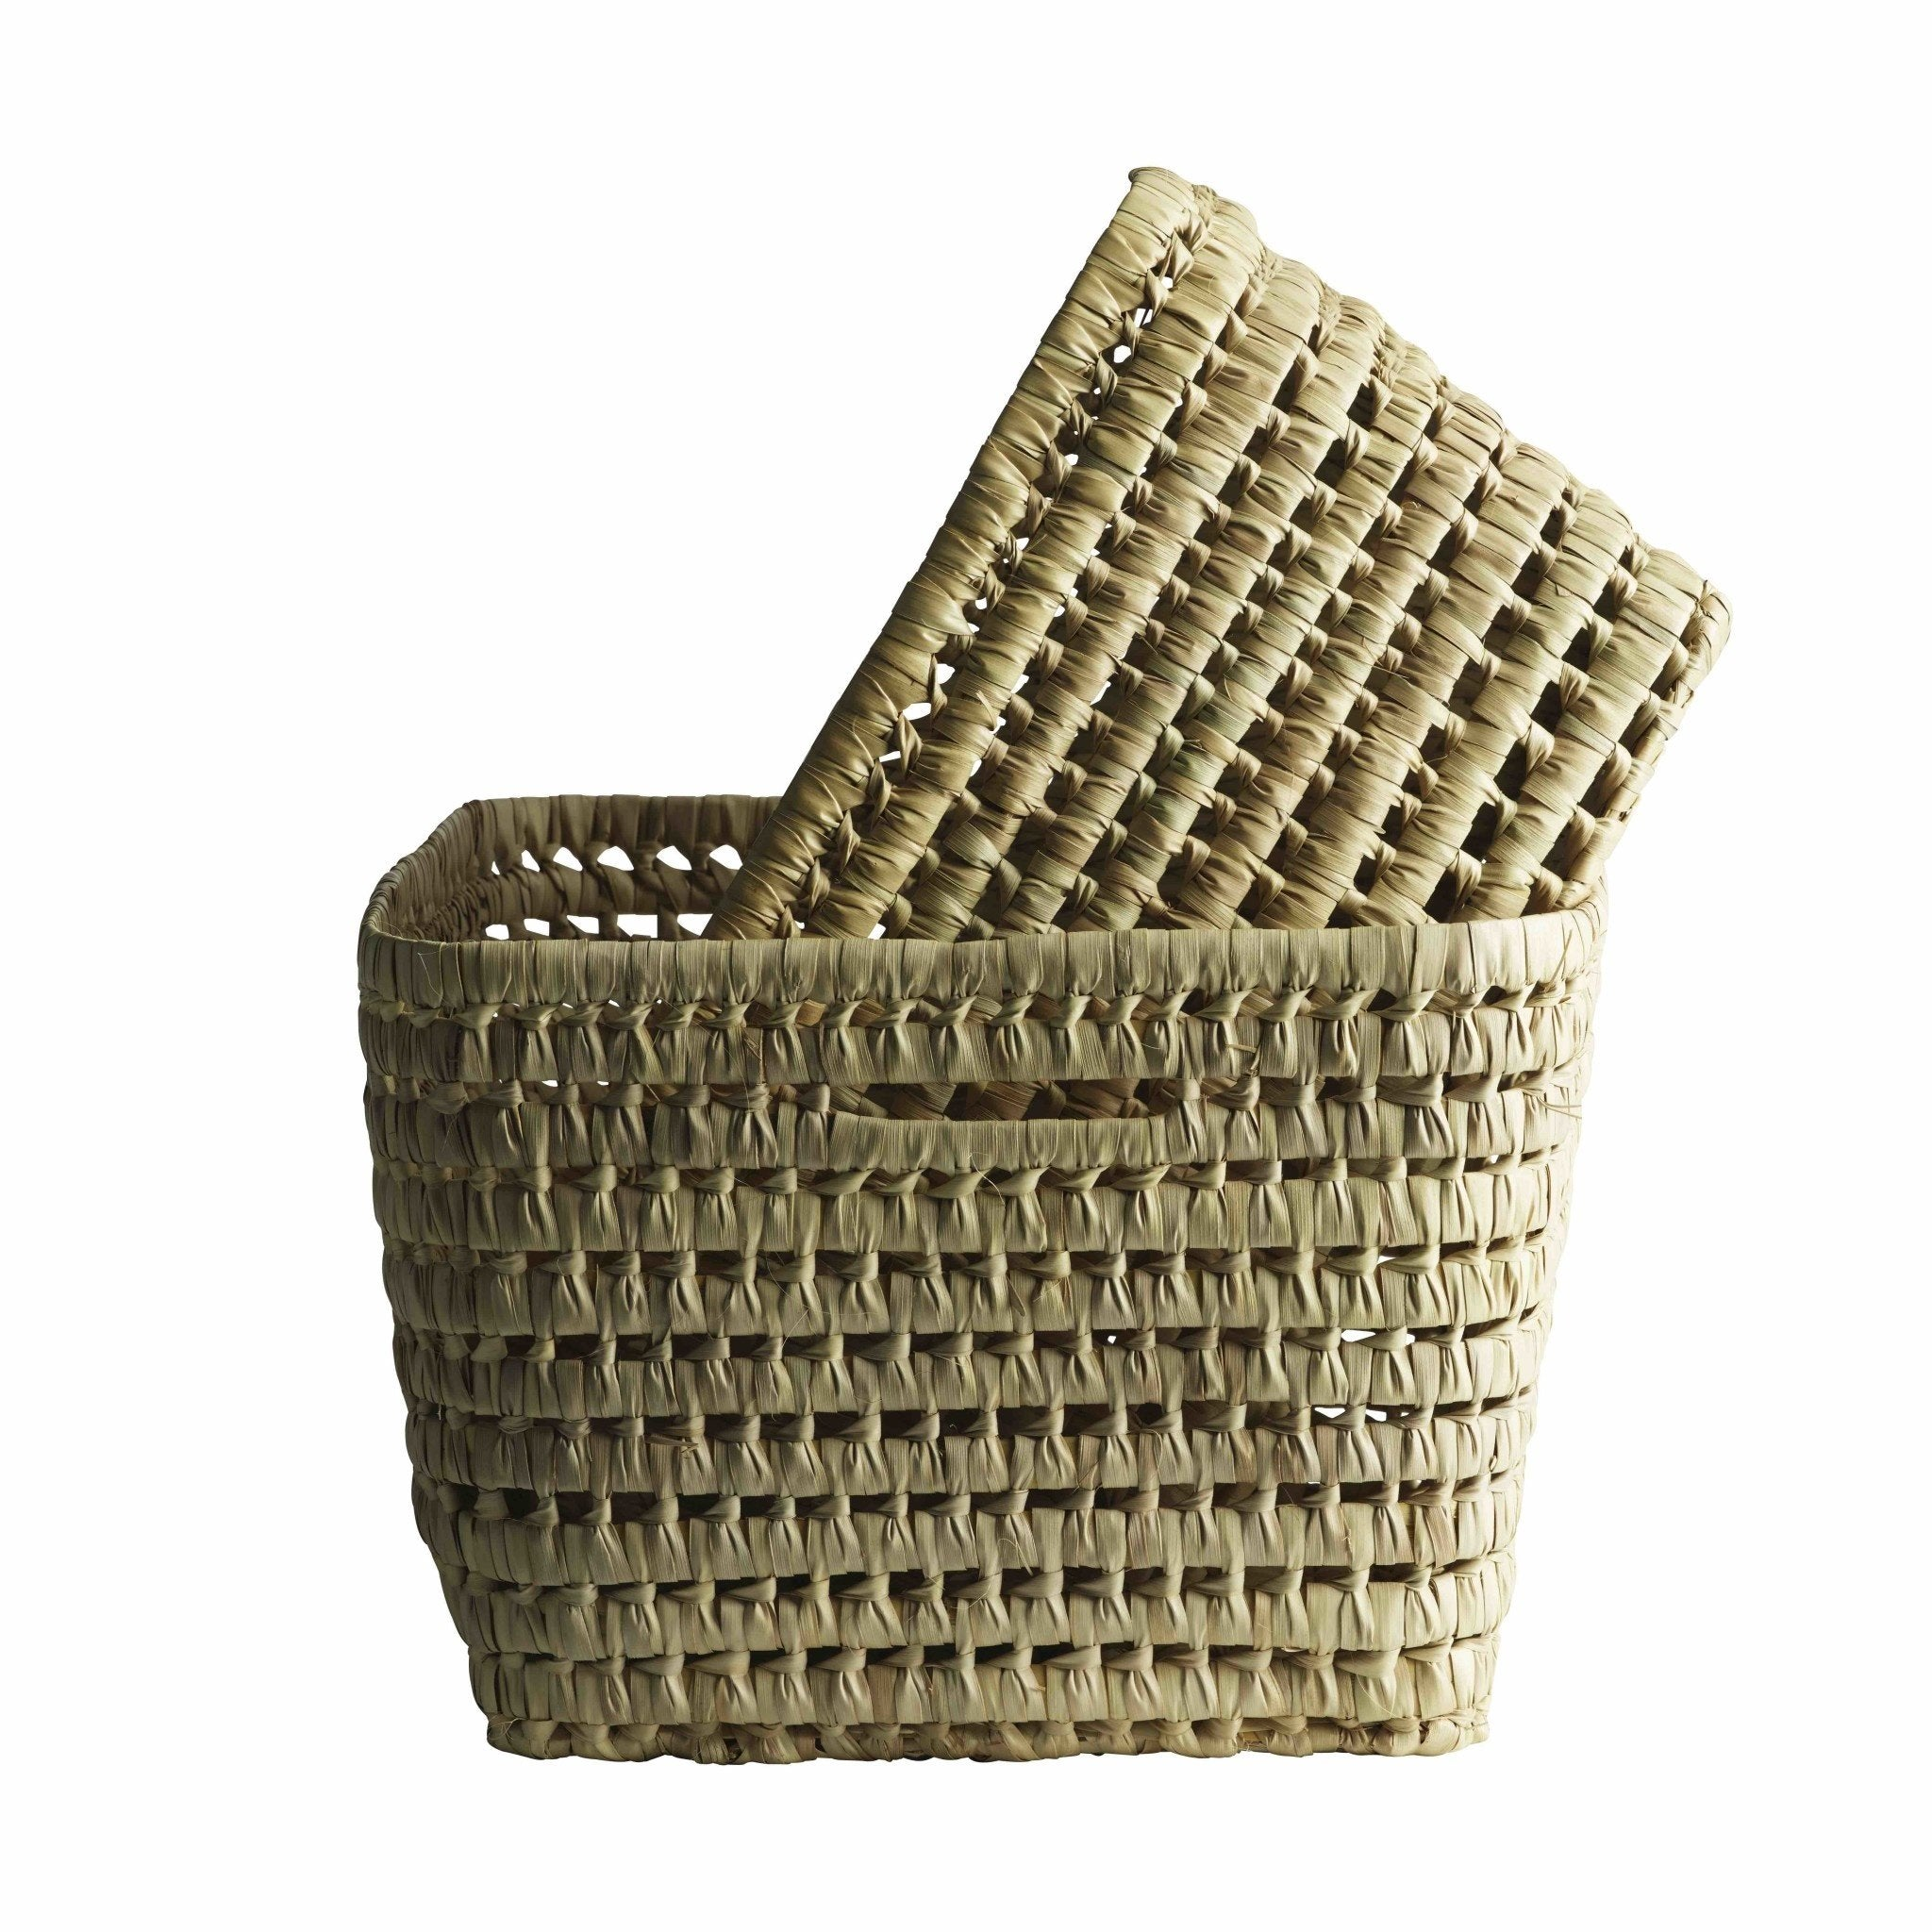 two woven rectangular baskets stacked inside one another